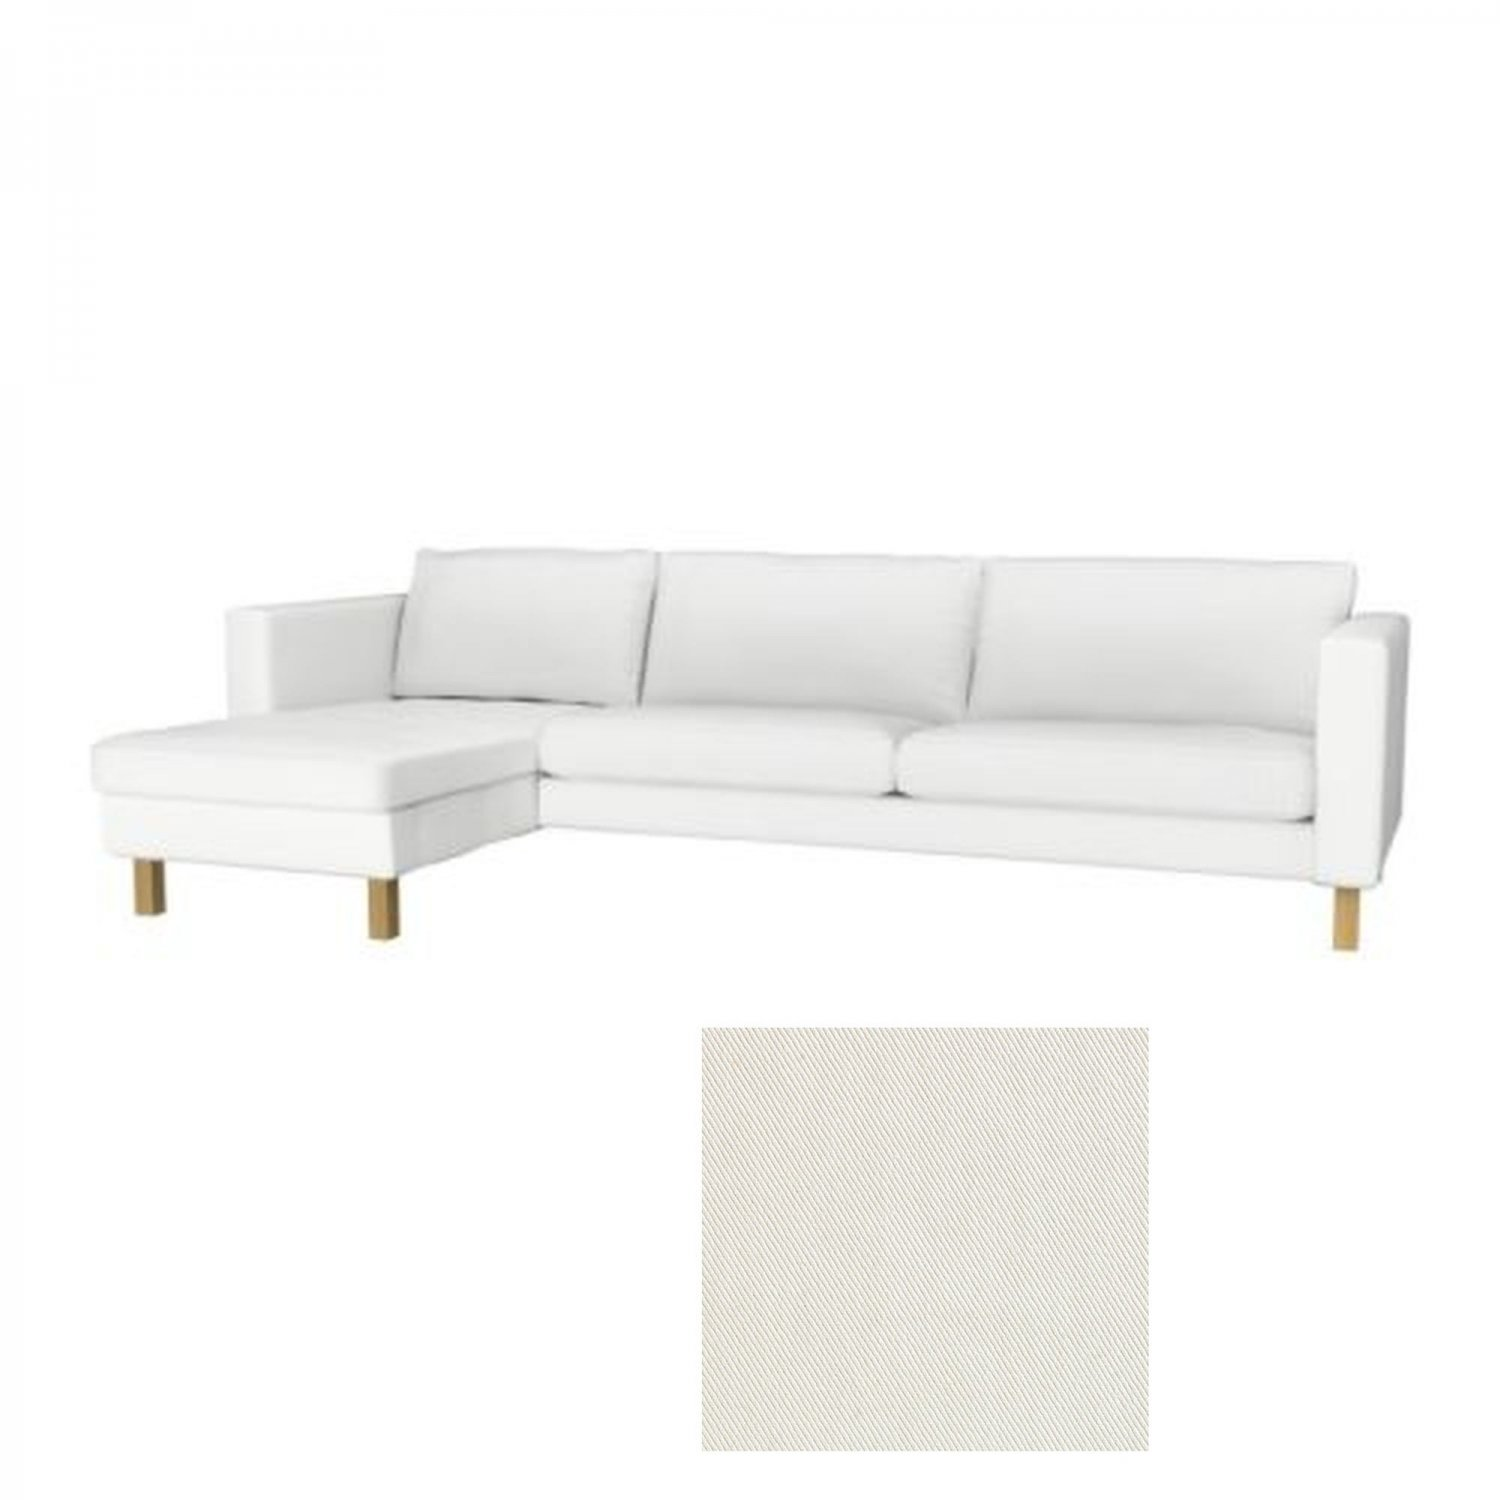 Ikea karlstad 3 seat sofa and chaise slipcover cover blekinge white add on Ikea karlstad sofa